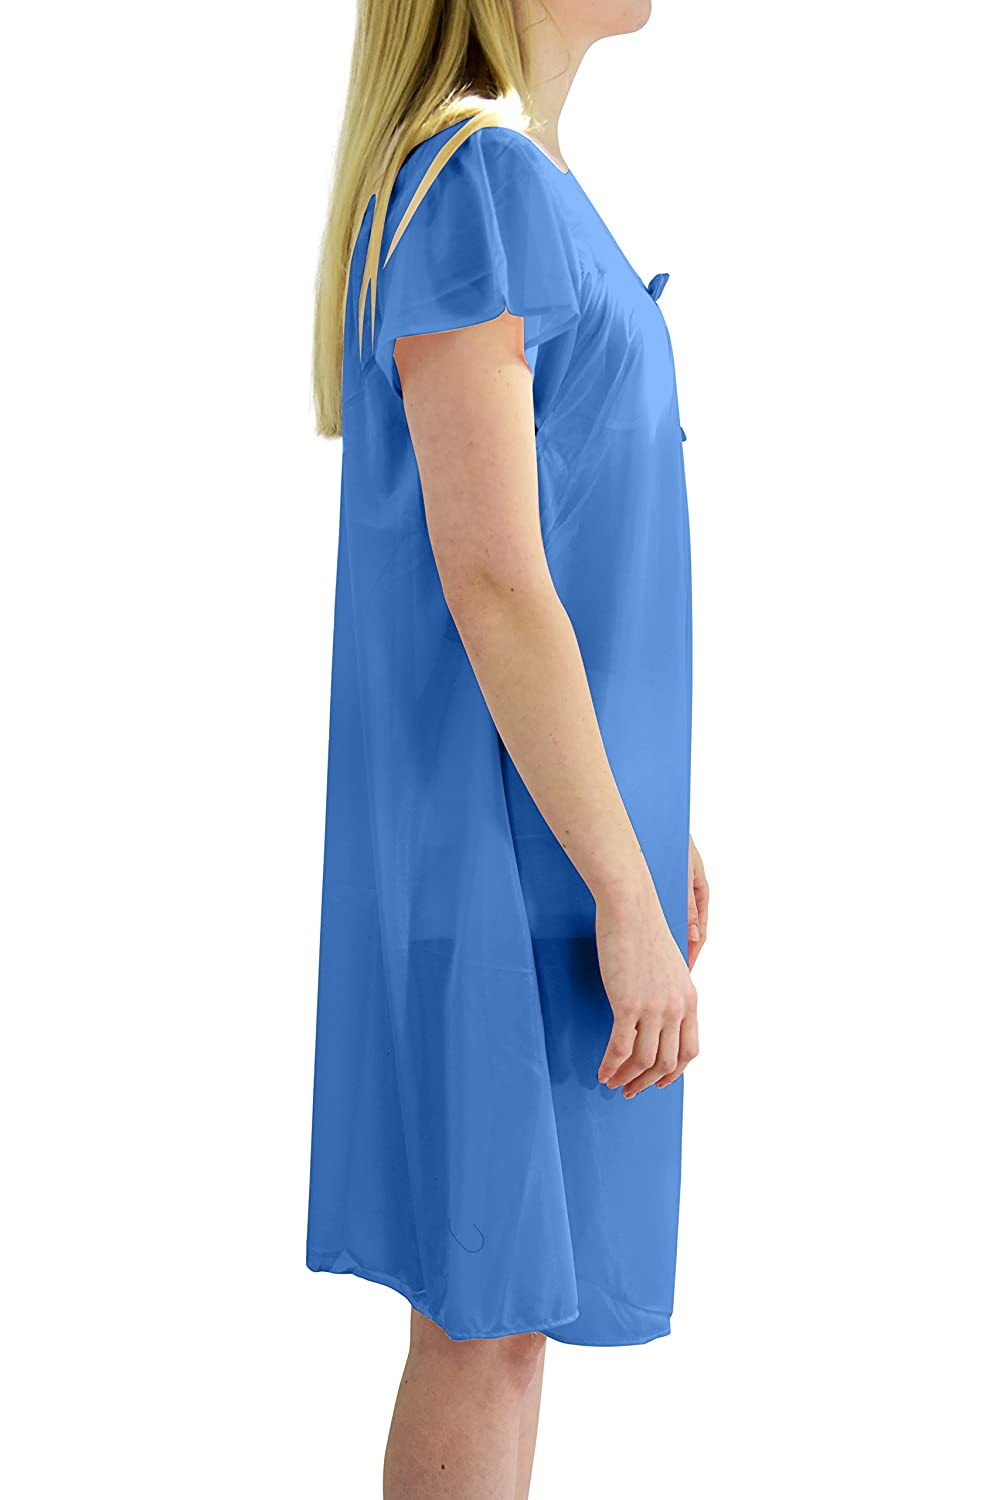 d6376a3943 Ezi womens wendy cap sleeve satin nightgown at amazon womens clothing store  jpg 1000x1500 Wendy nightgown